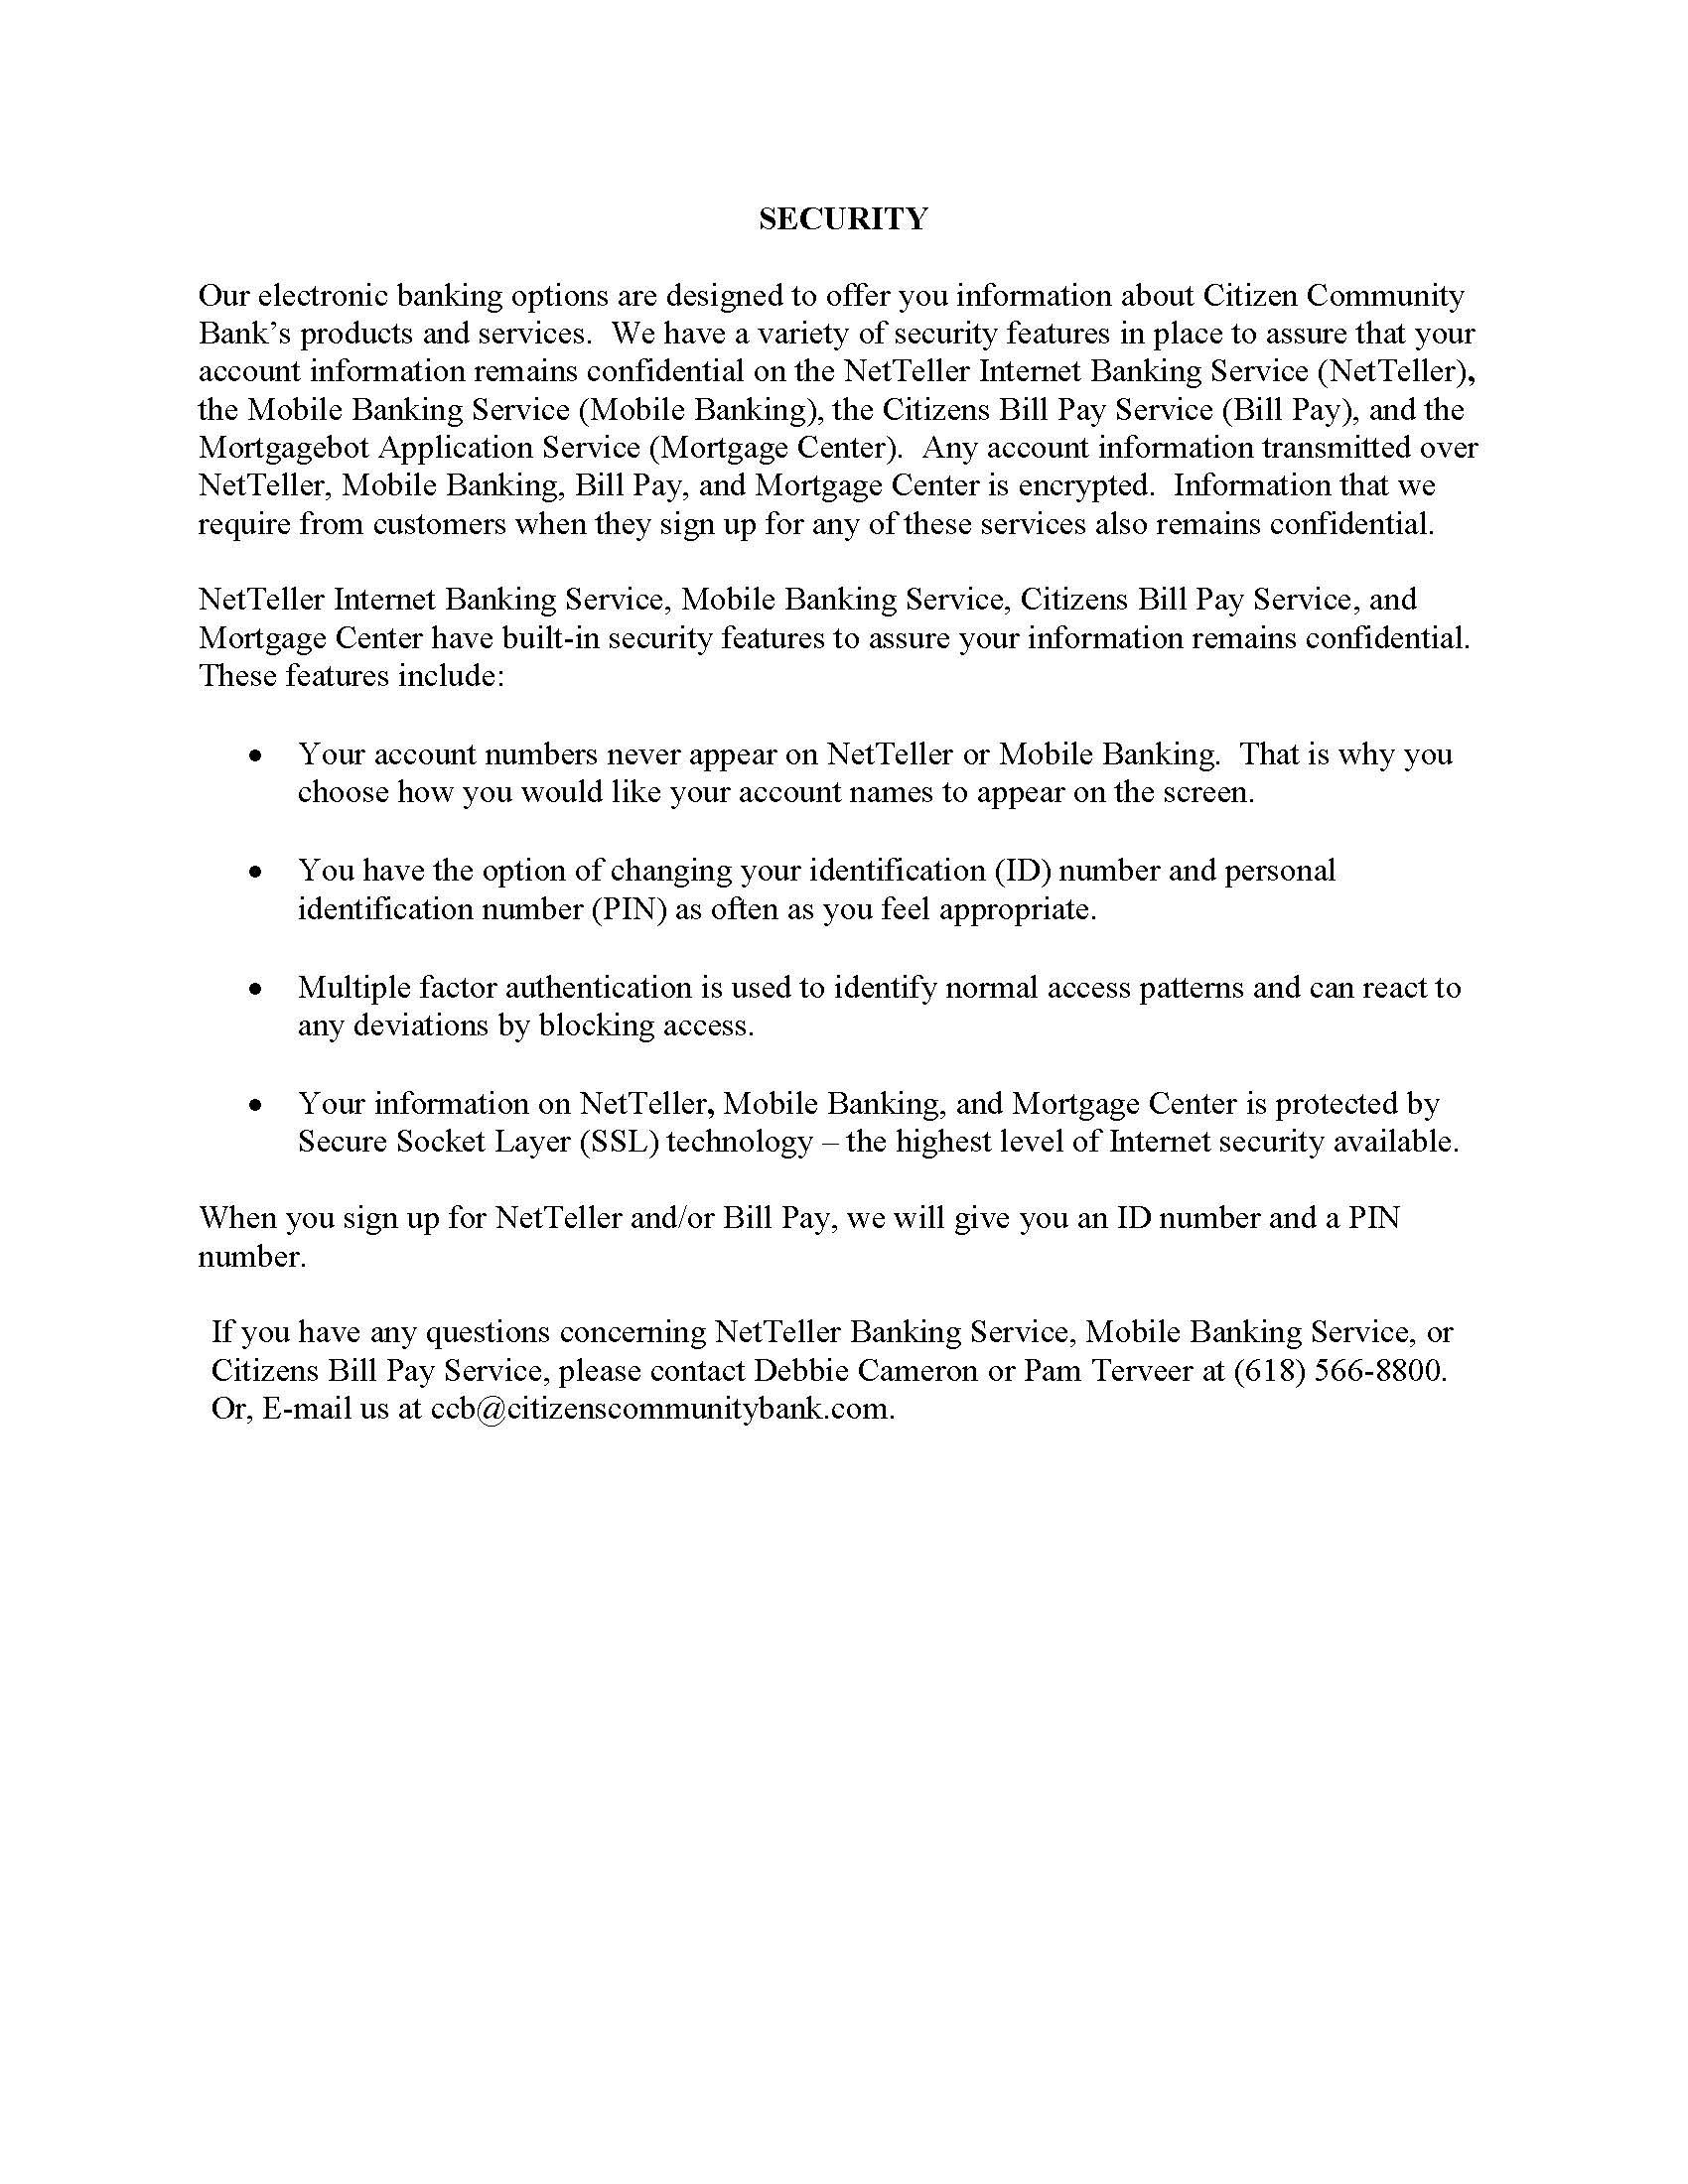 citizens-community-bank-privacy-notice-page3